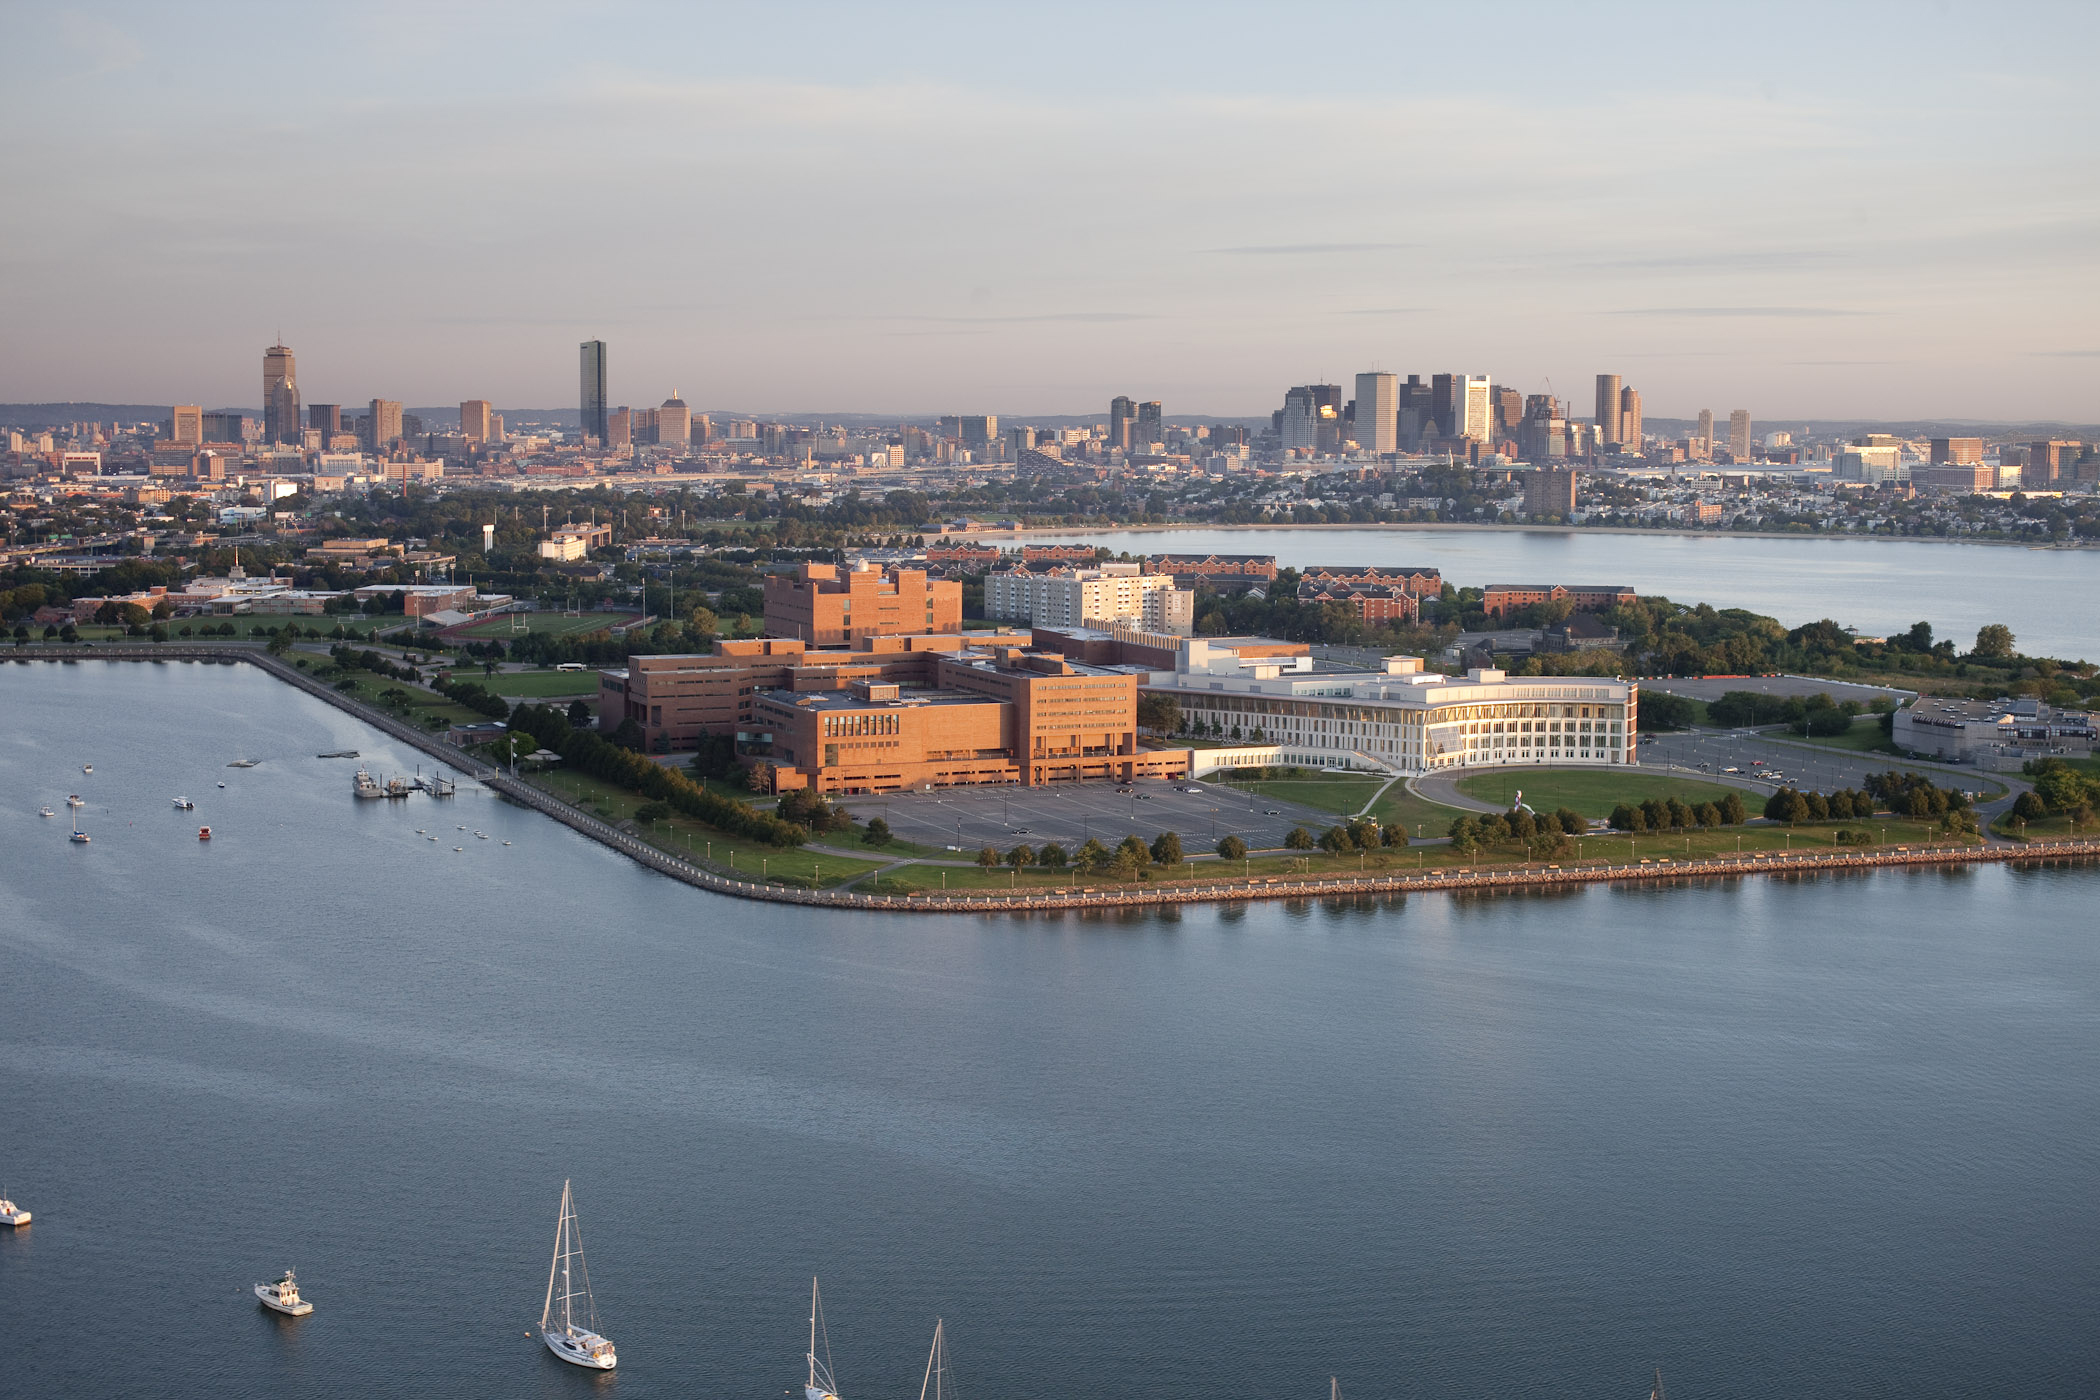 University of Massachusetts in Boston